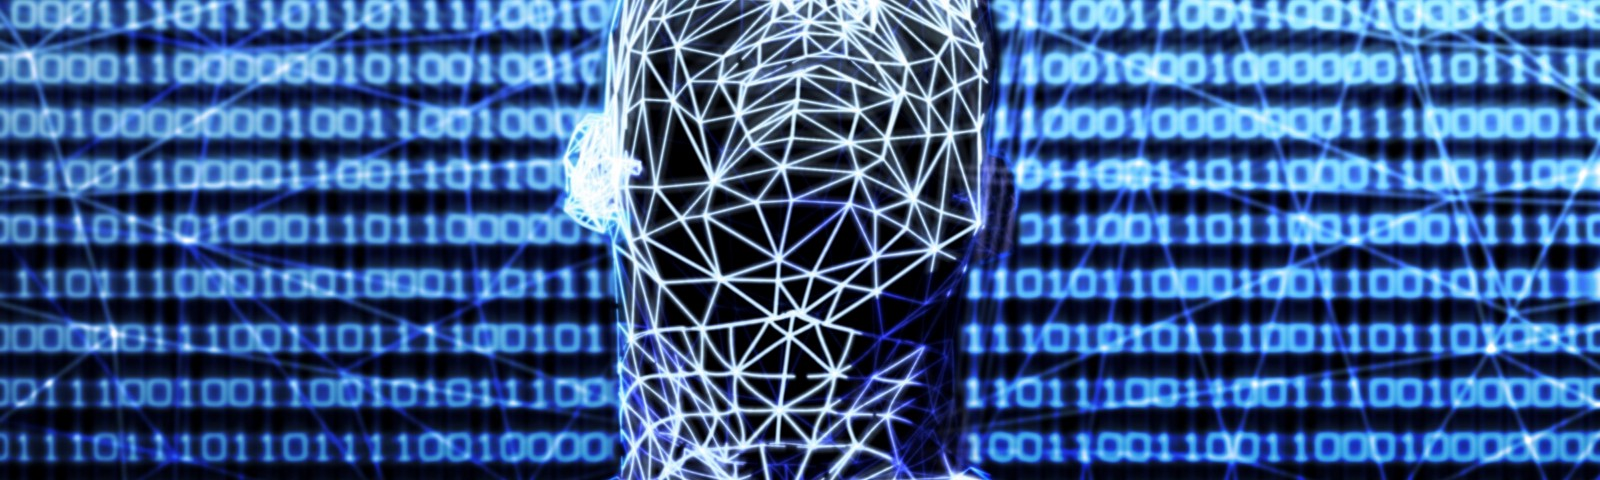 A wireframe superimposed over a person's upper body, binary code projected on the wall in the background.